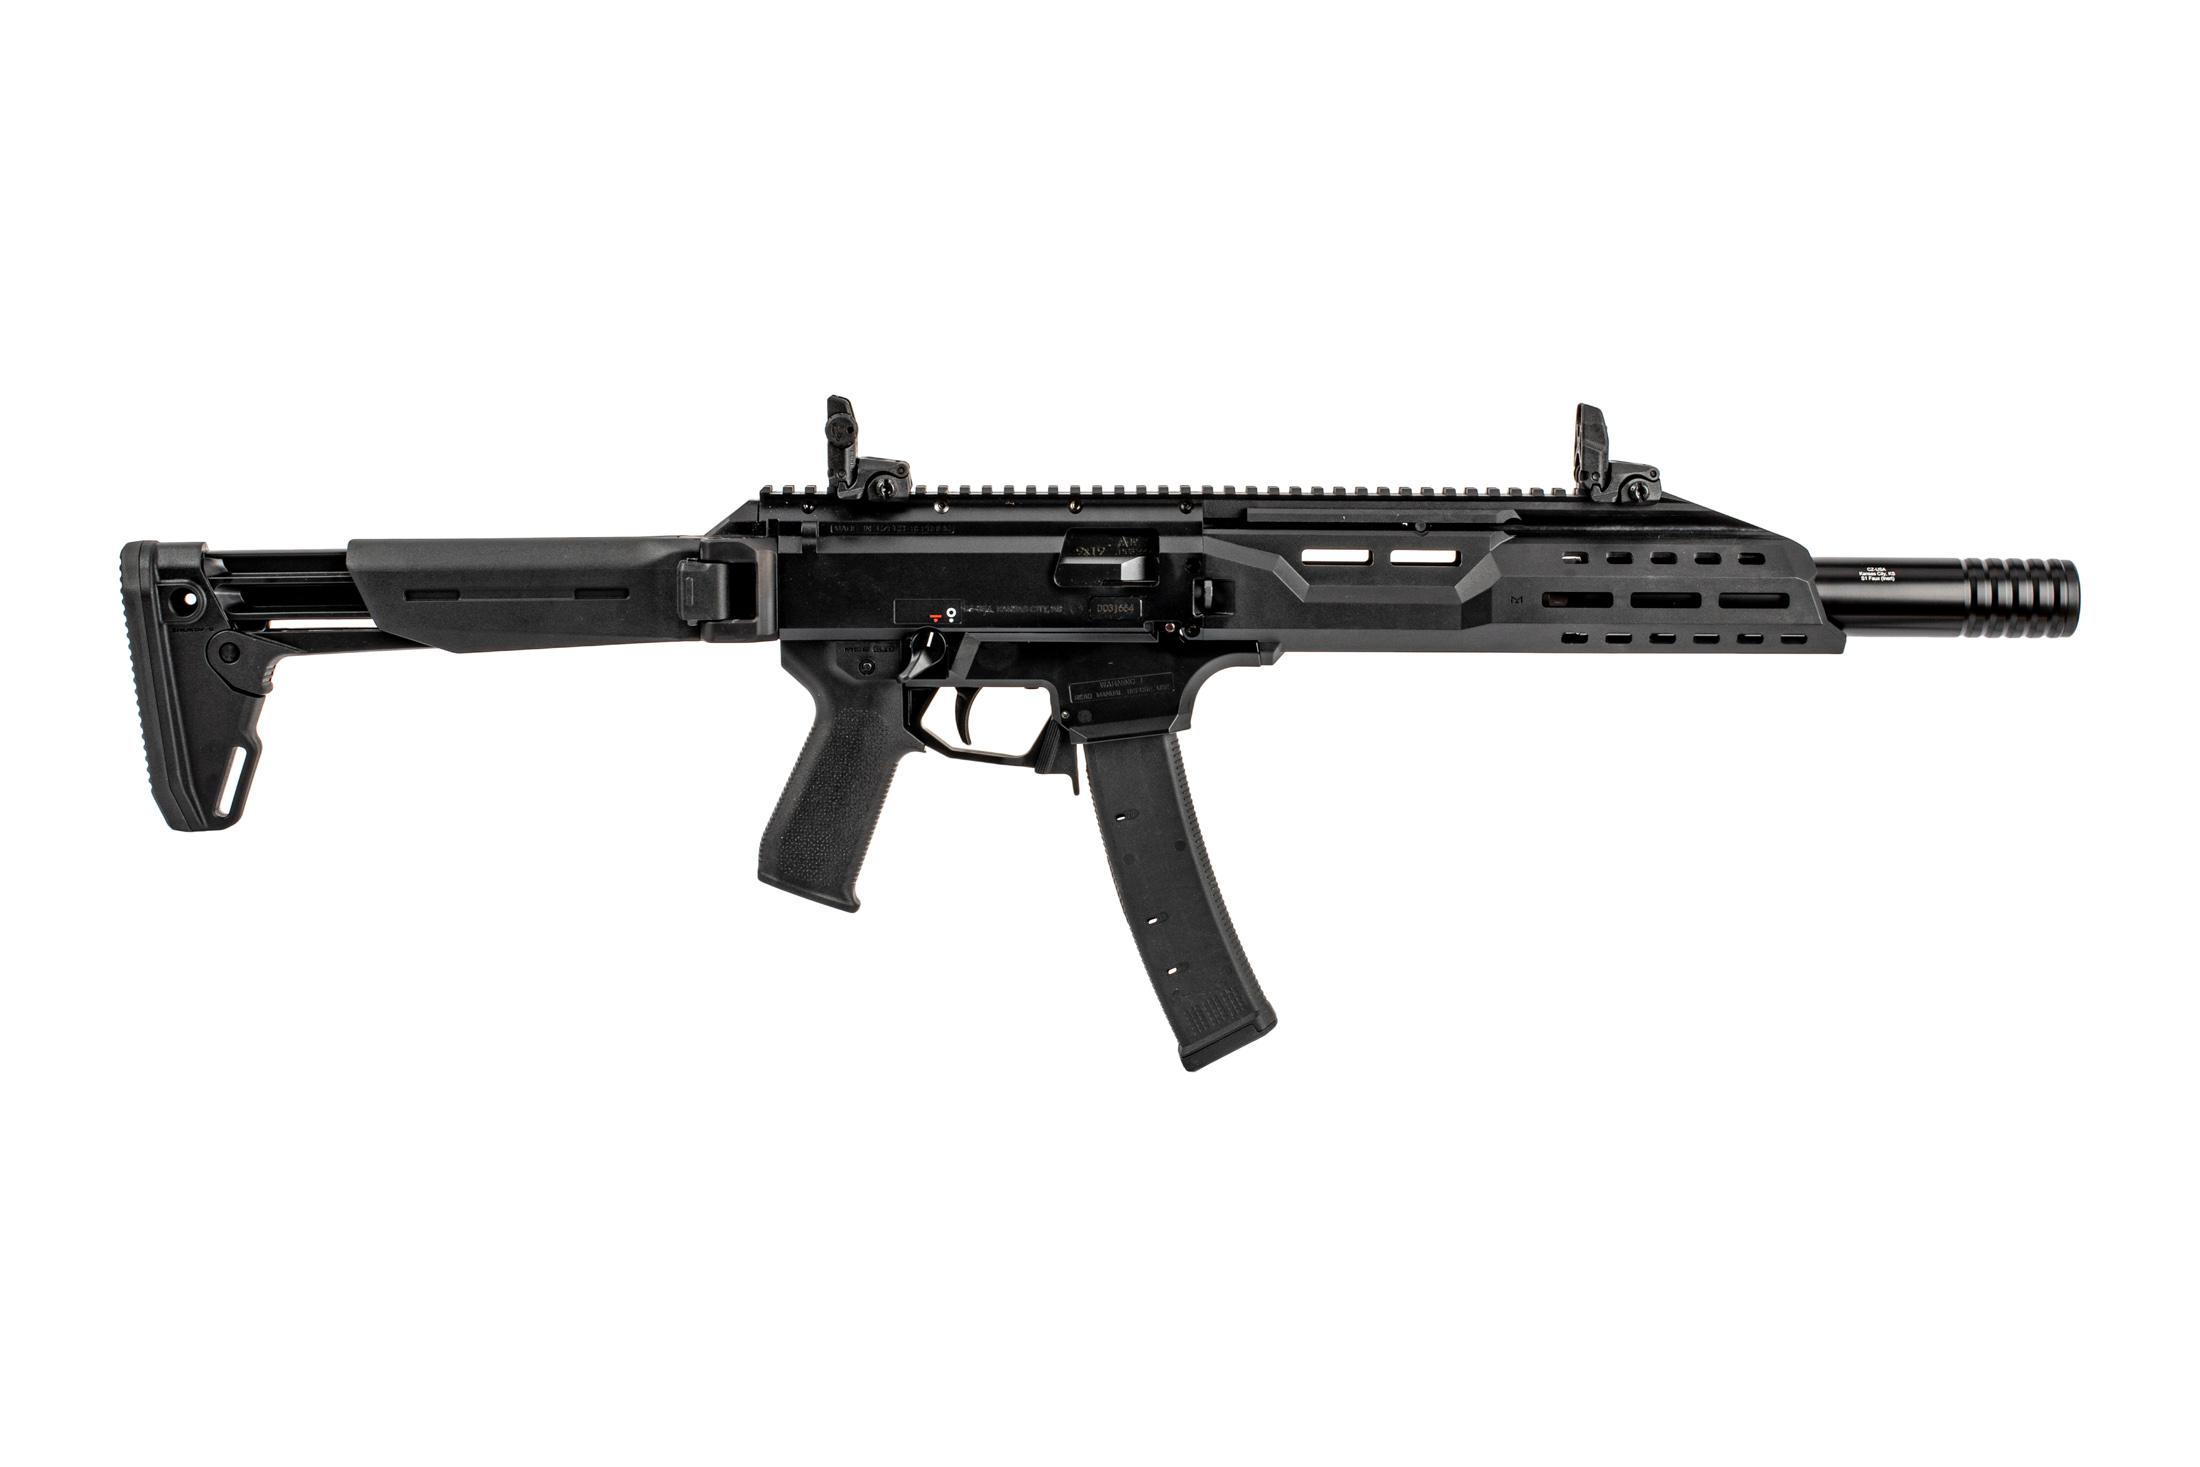 CZ USA 16 Magpul Edition Scorpion carbine in 9mm luger with Magpul grip, ZHUKOV-S stock, and MBUS sights